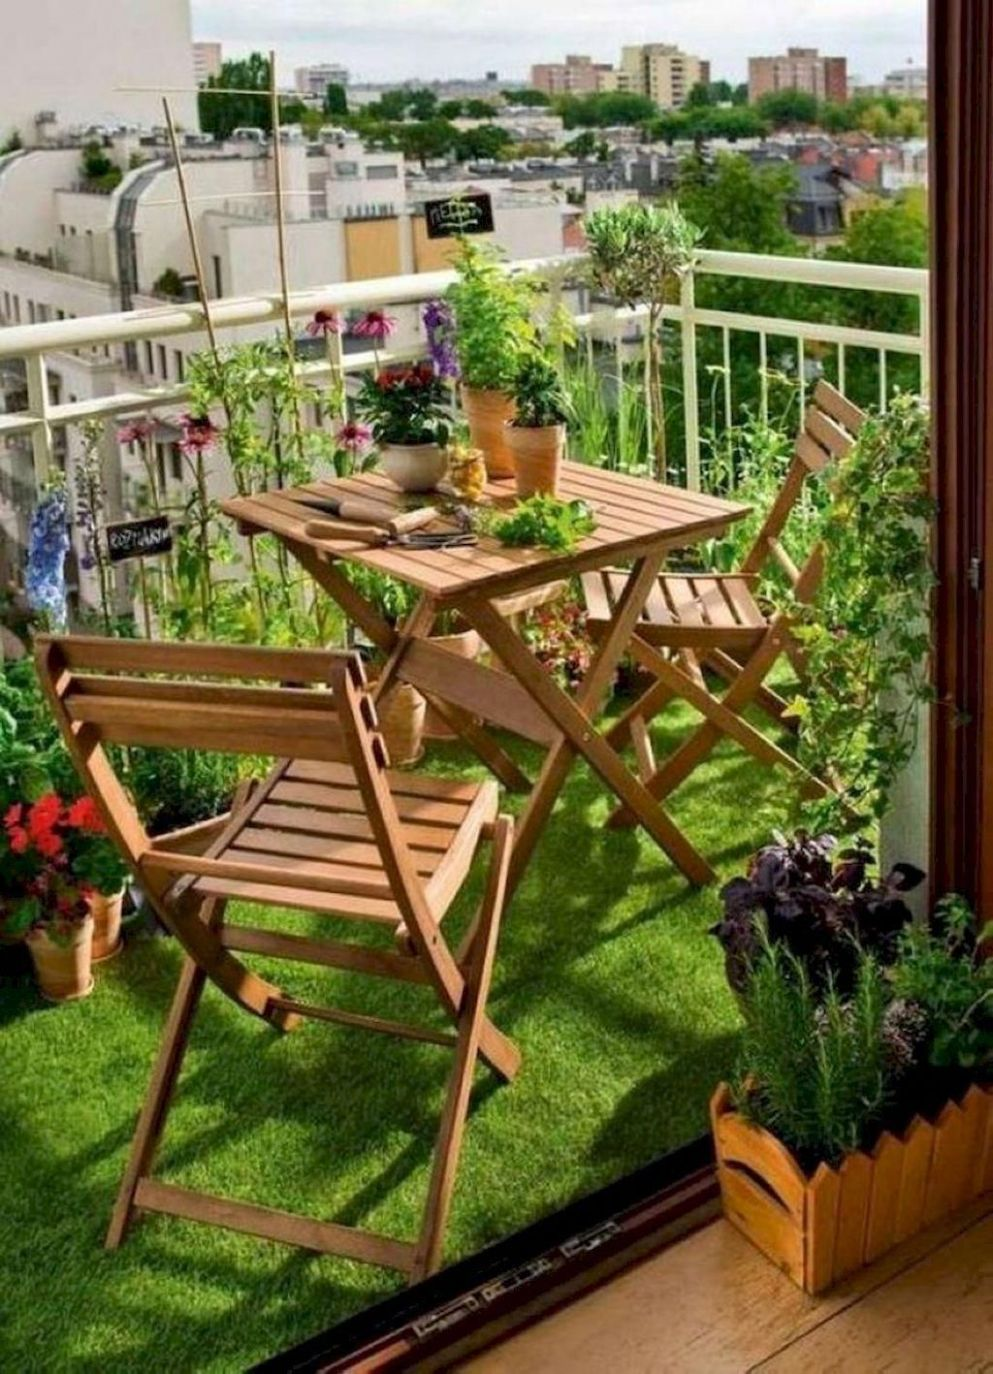 Small balcony garden by Audrey Perez on Quirky room decor in 8 ...